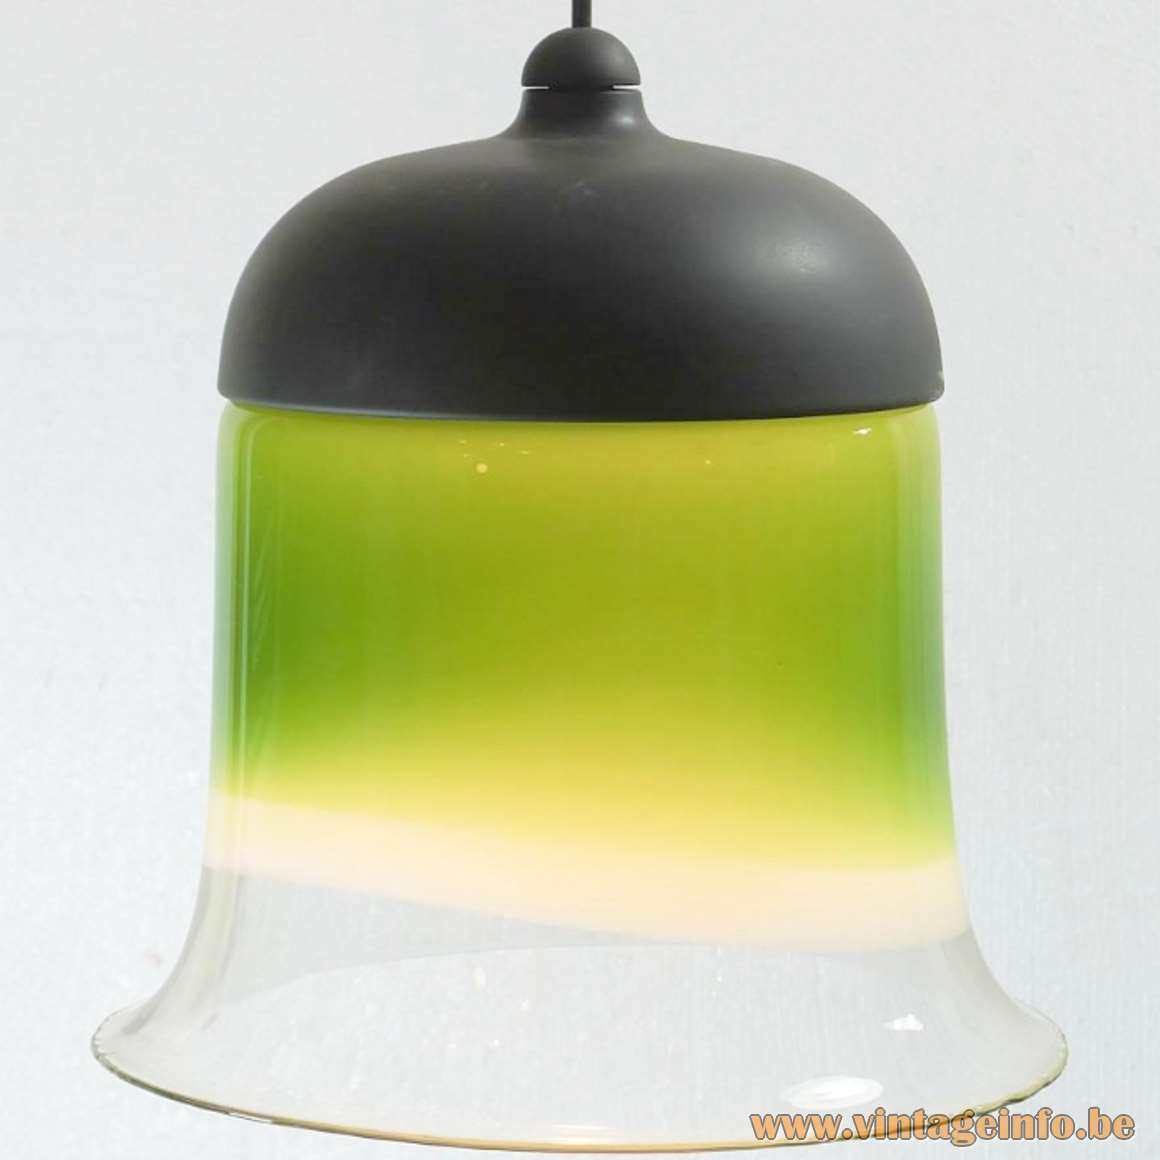 Peill + Putzler Bell Pendant Lamp clear below, coloured on top black plastic model AH182 1970s